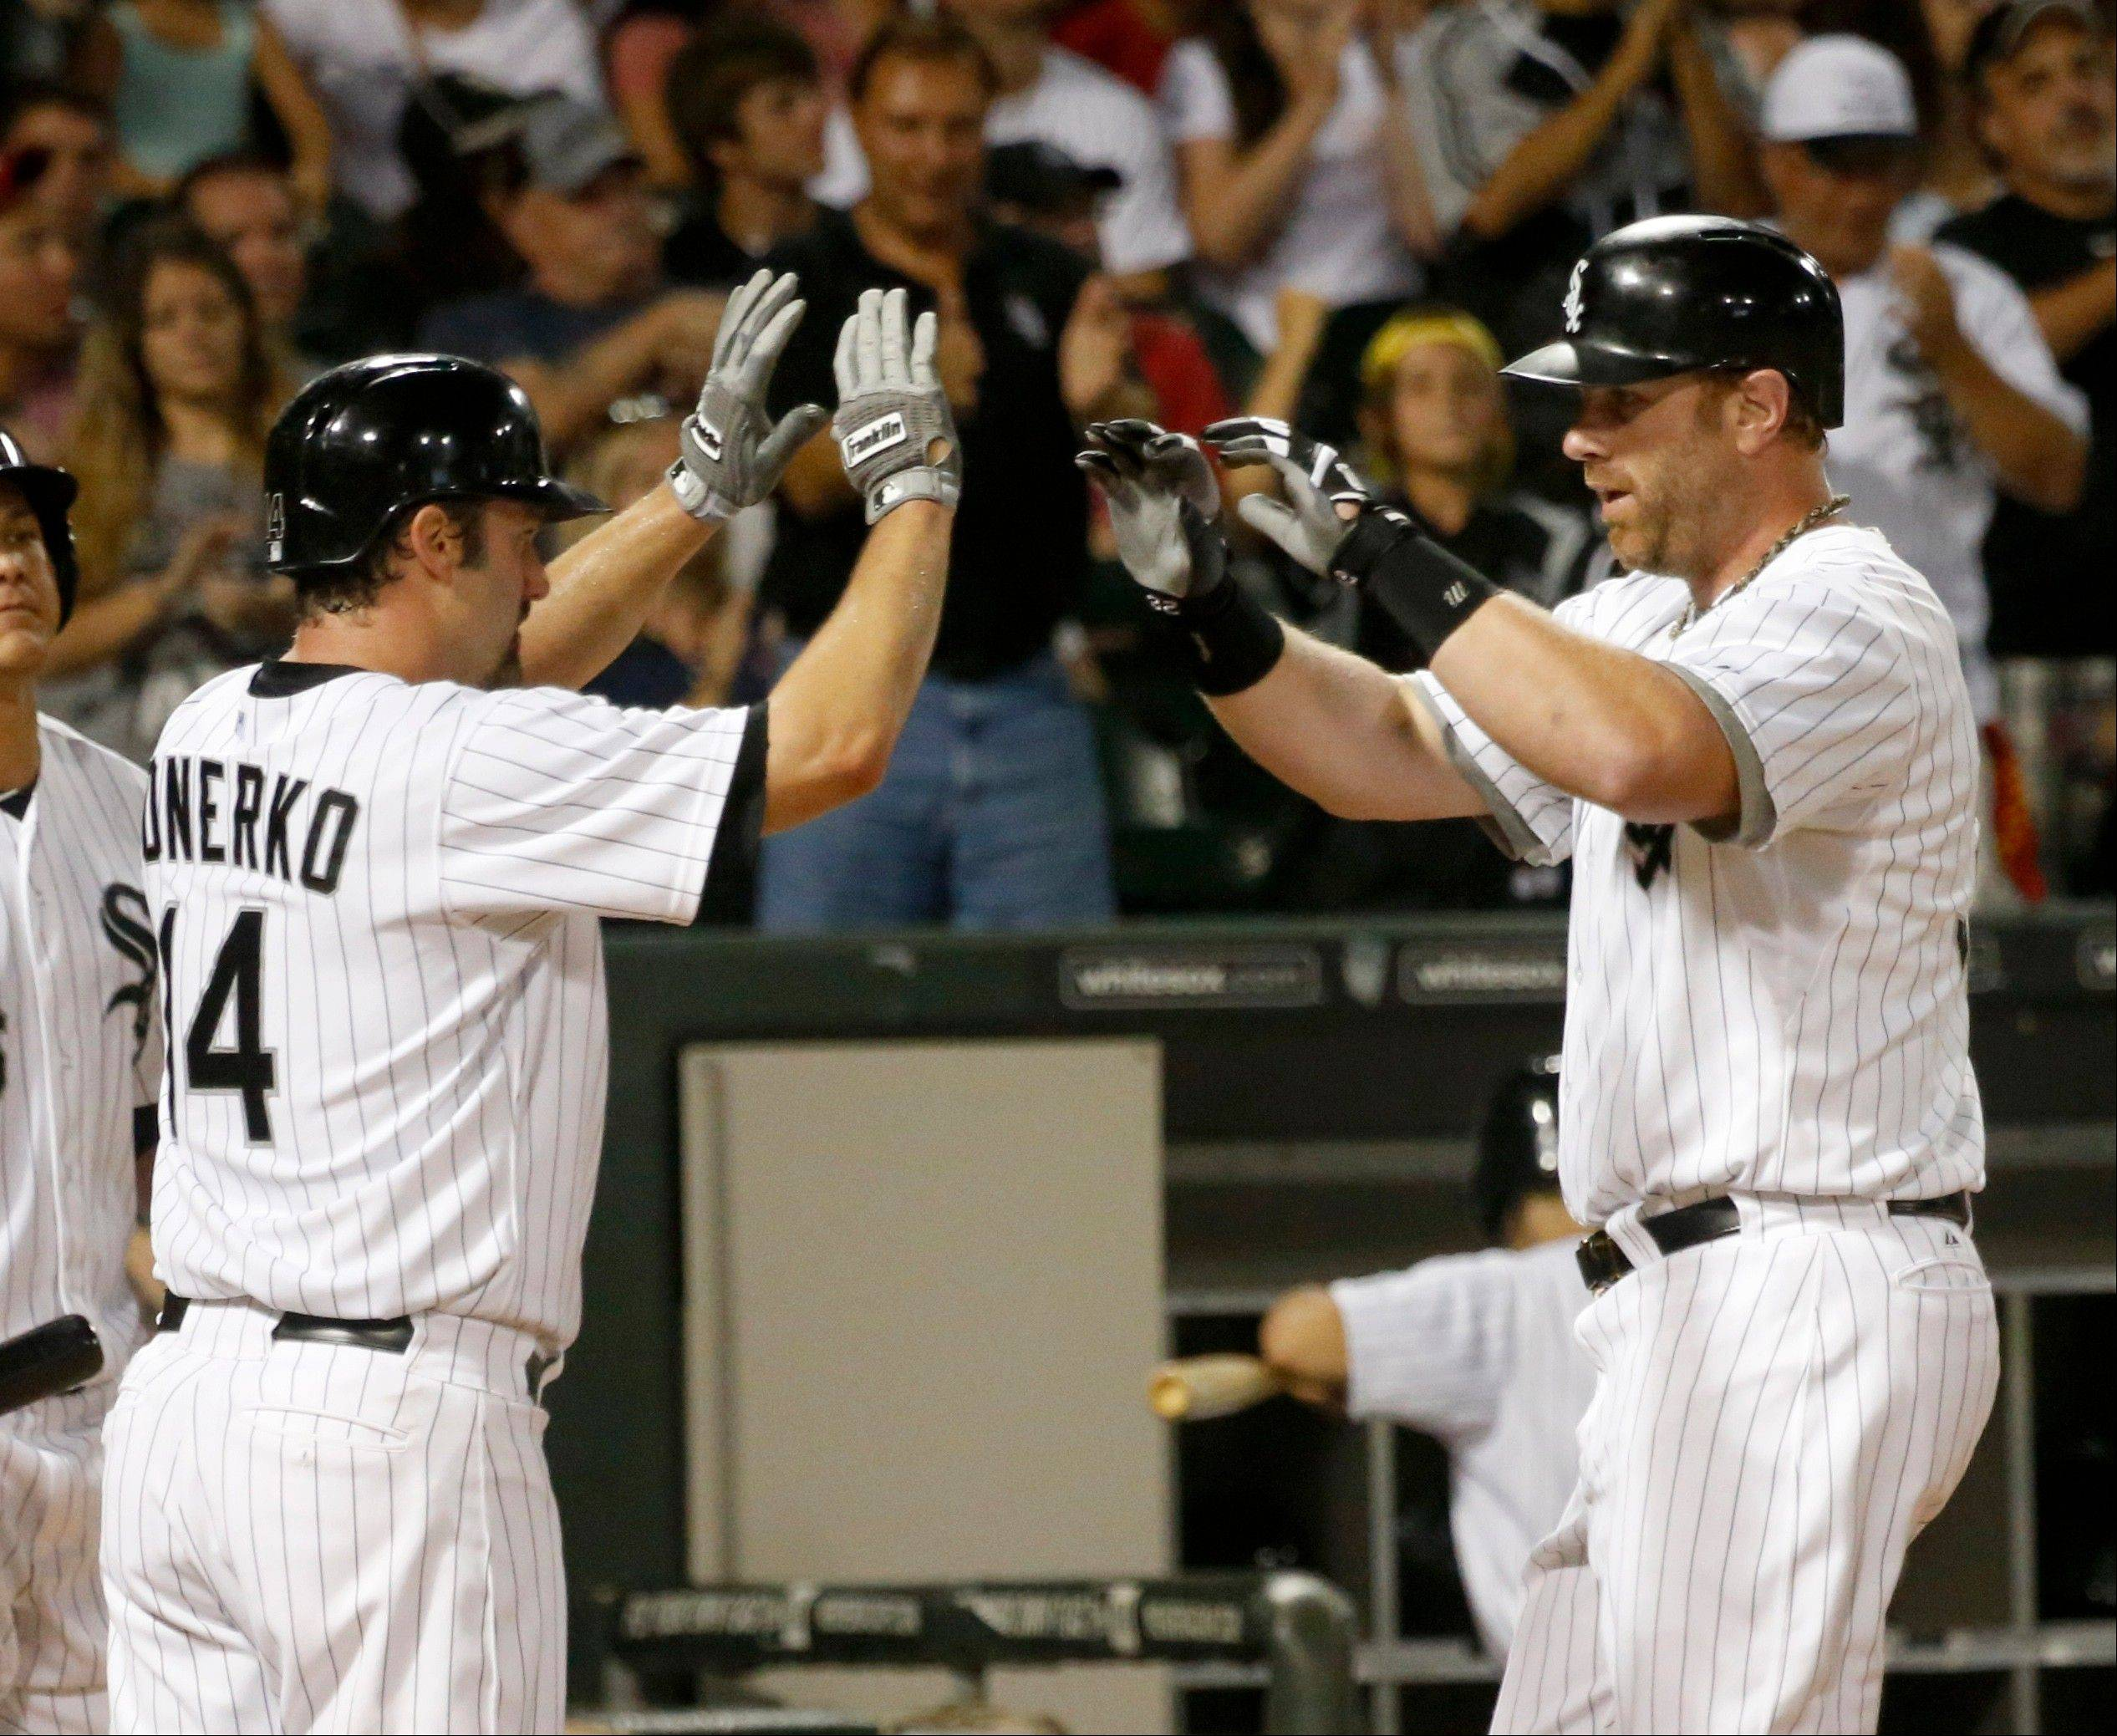 Paul Konerko (14) greets Adam Dunn at home after the pair scored on Dunn's two-run homer off Houston Astros relief pitcher Brett Oberholtzer during the sixth inning Monday in Chicago.